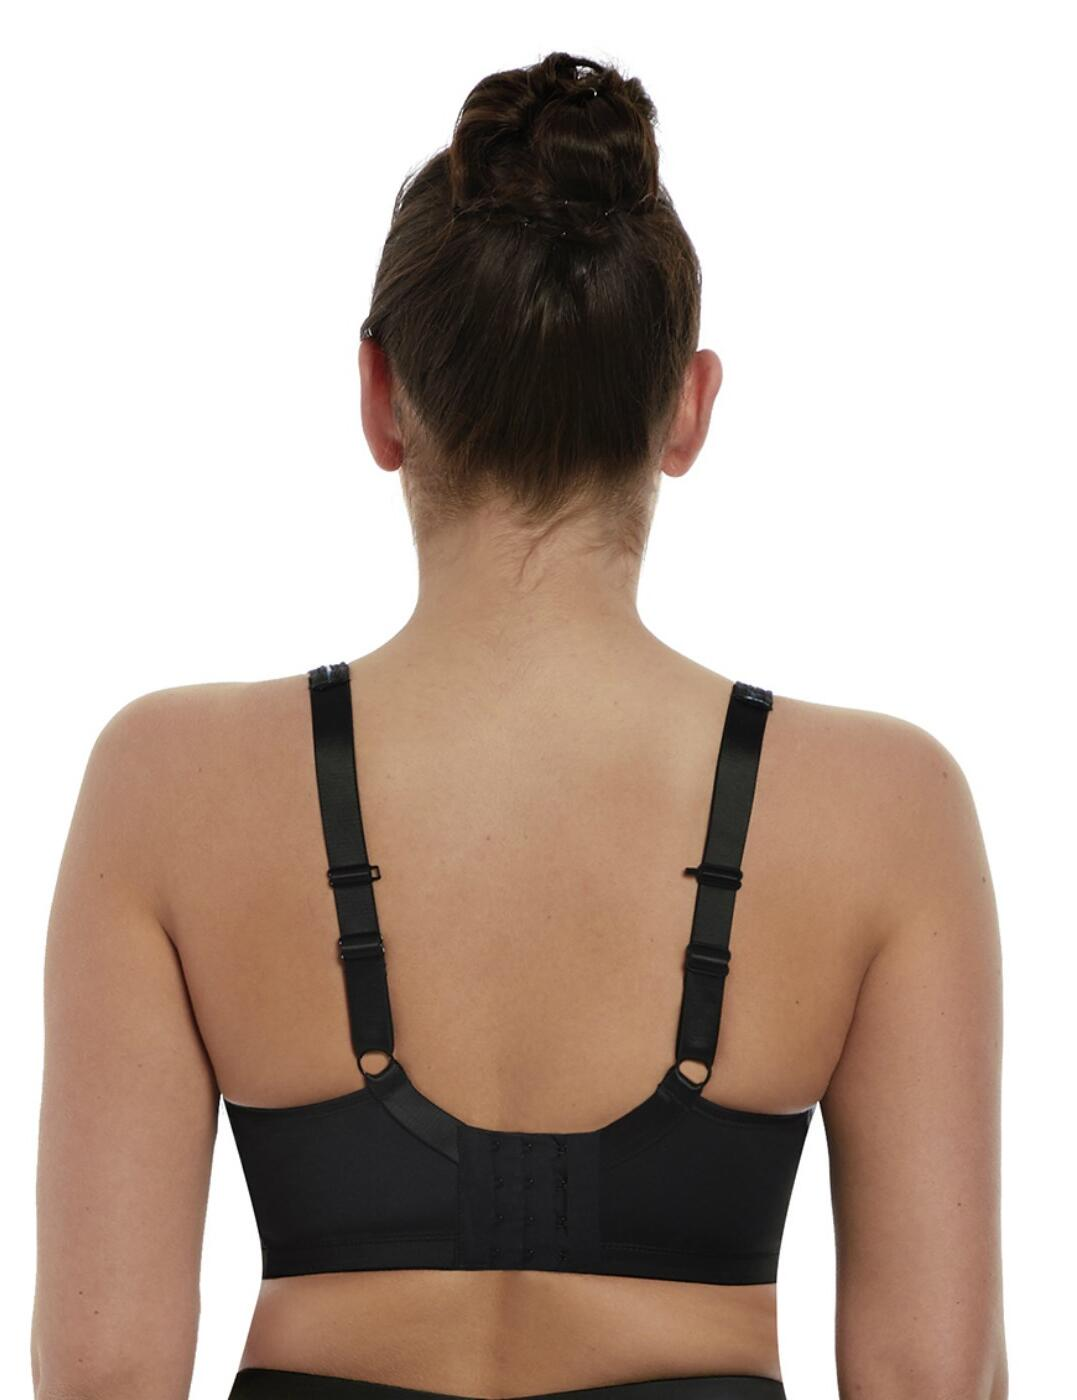 Freya-Active-Sports-Bra-Sonic-Underwired-Moulded-4892-Supportive-High-Impact thumbnail 9